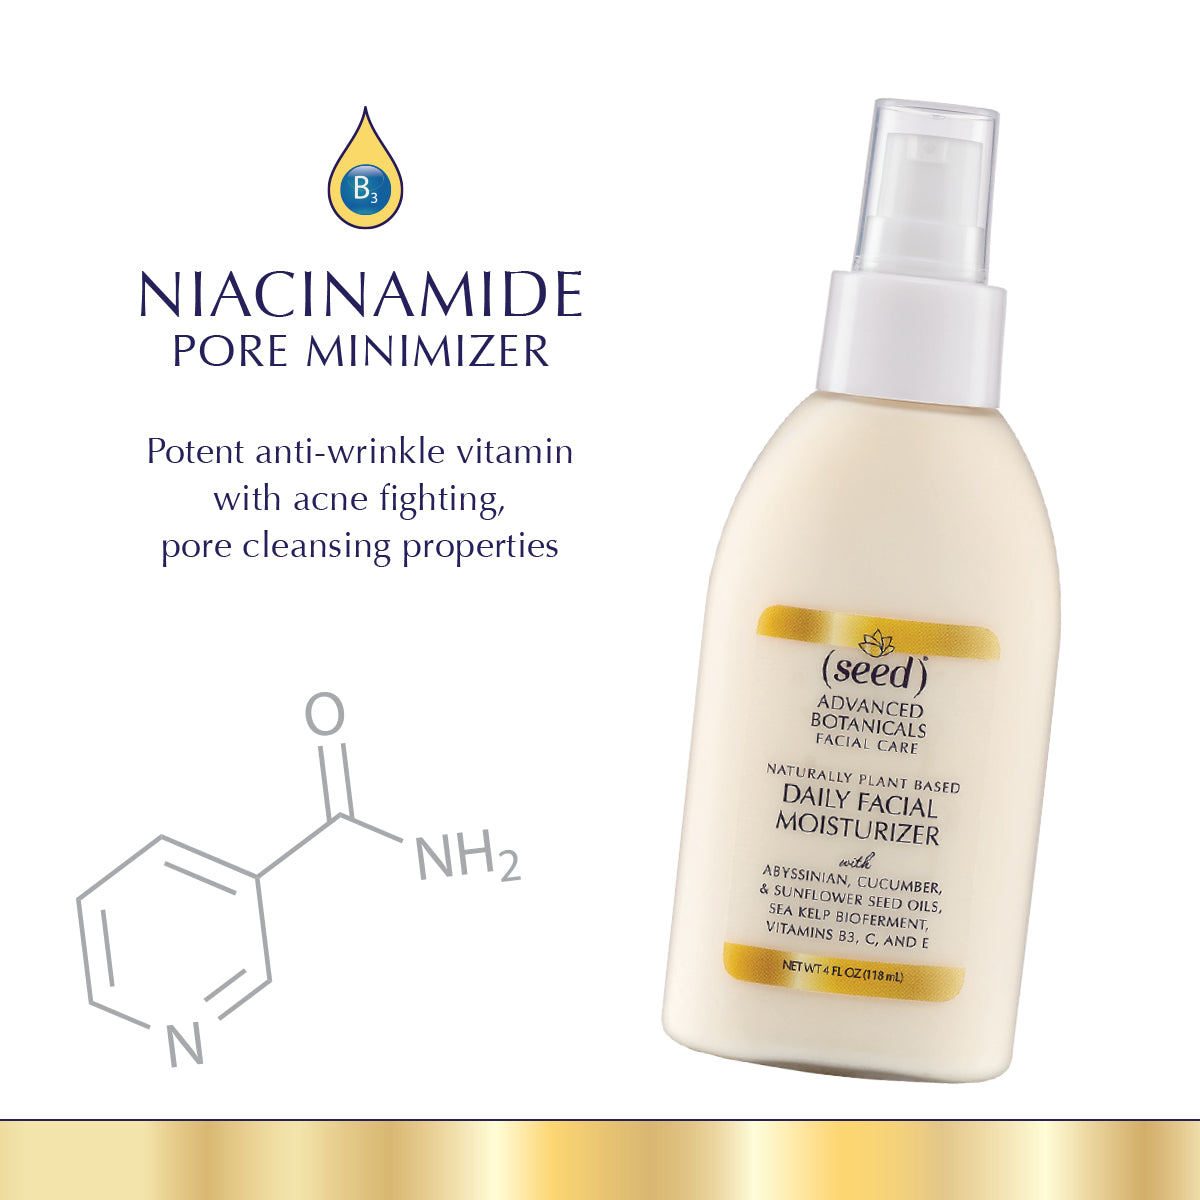 Seed Advanced Botanicals Daily Facial Moisturizer features Niacinamide